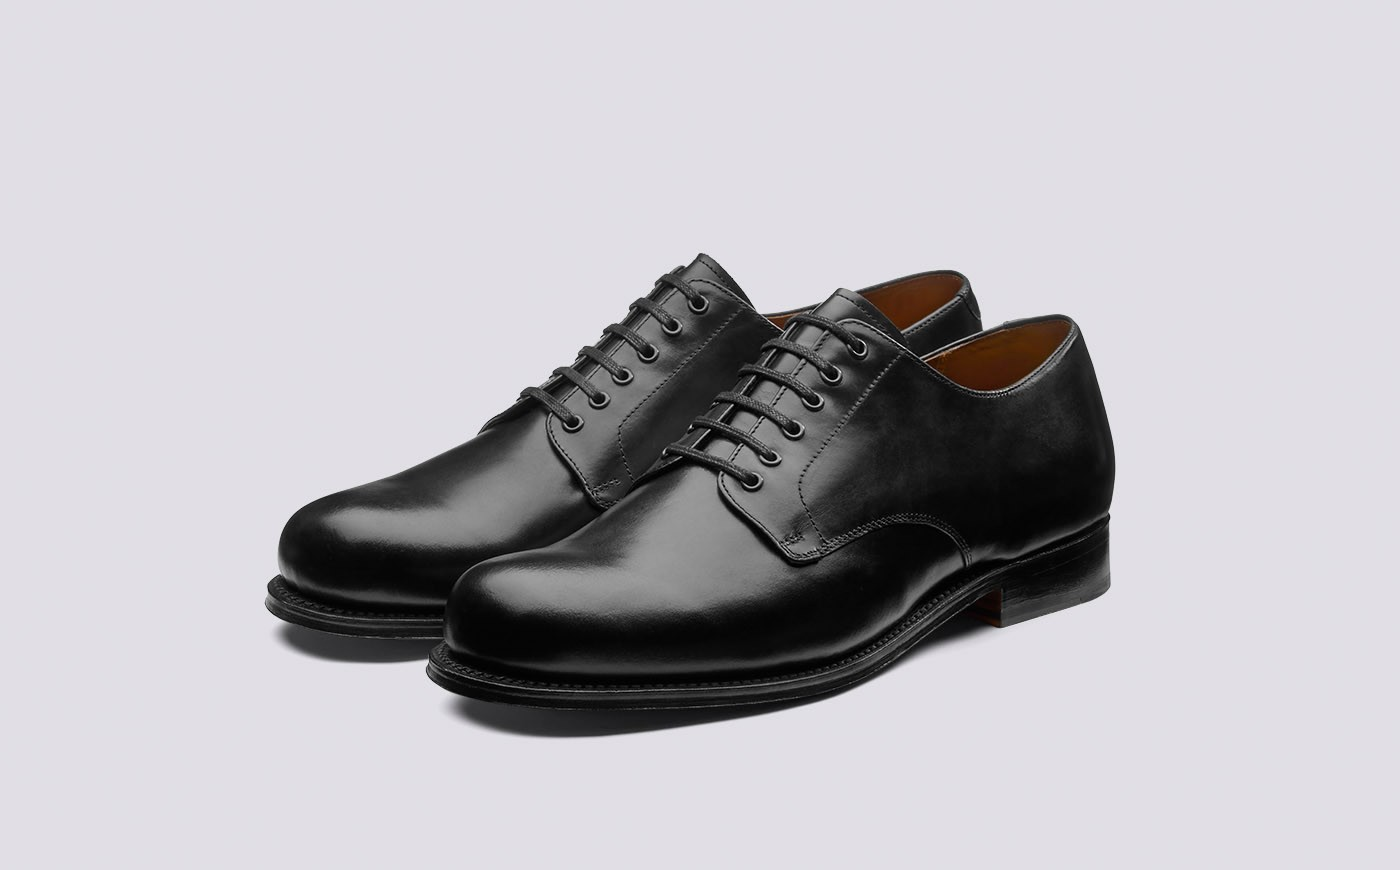 Grenson Men's Fall Fashion Essentials